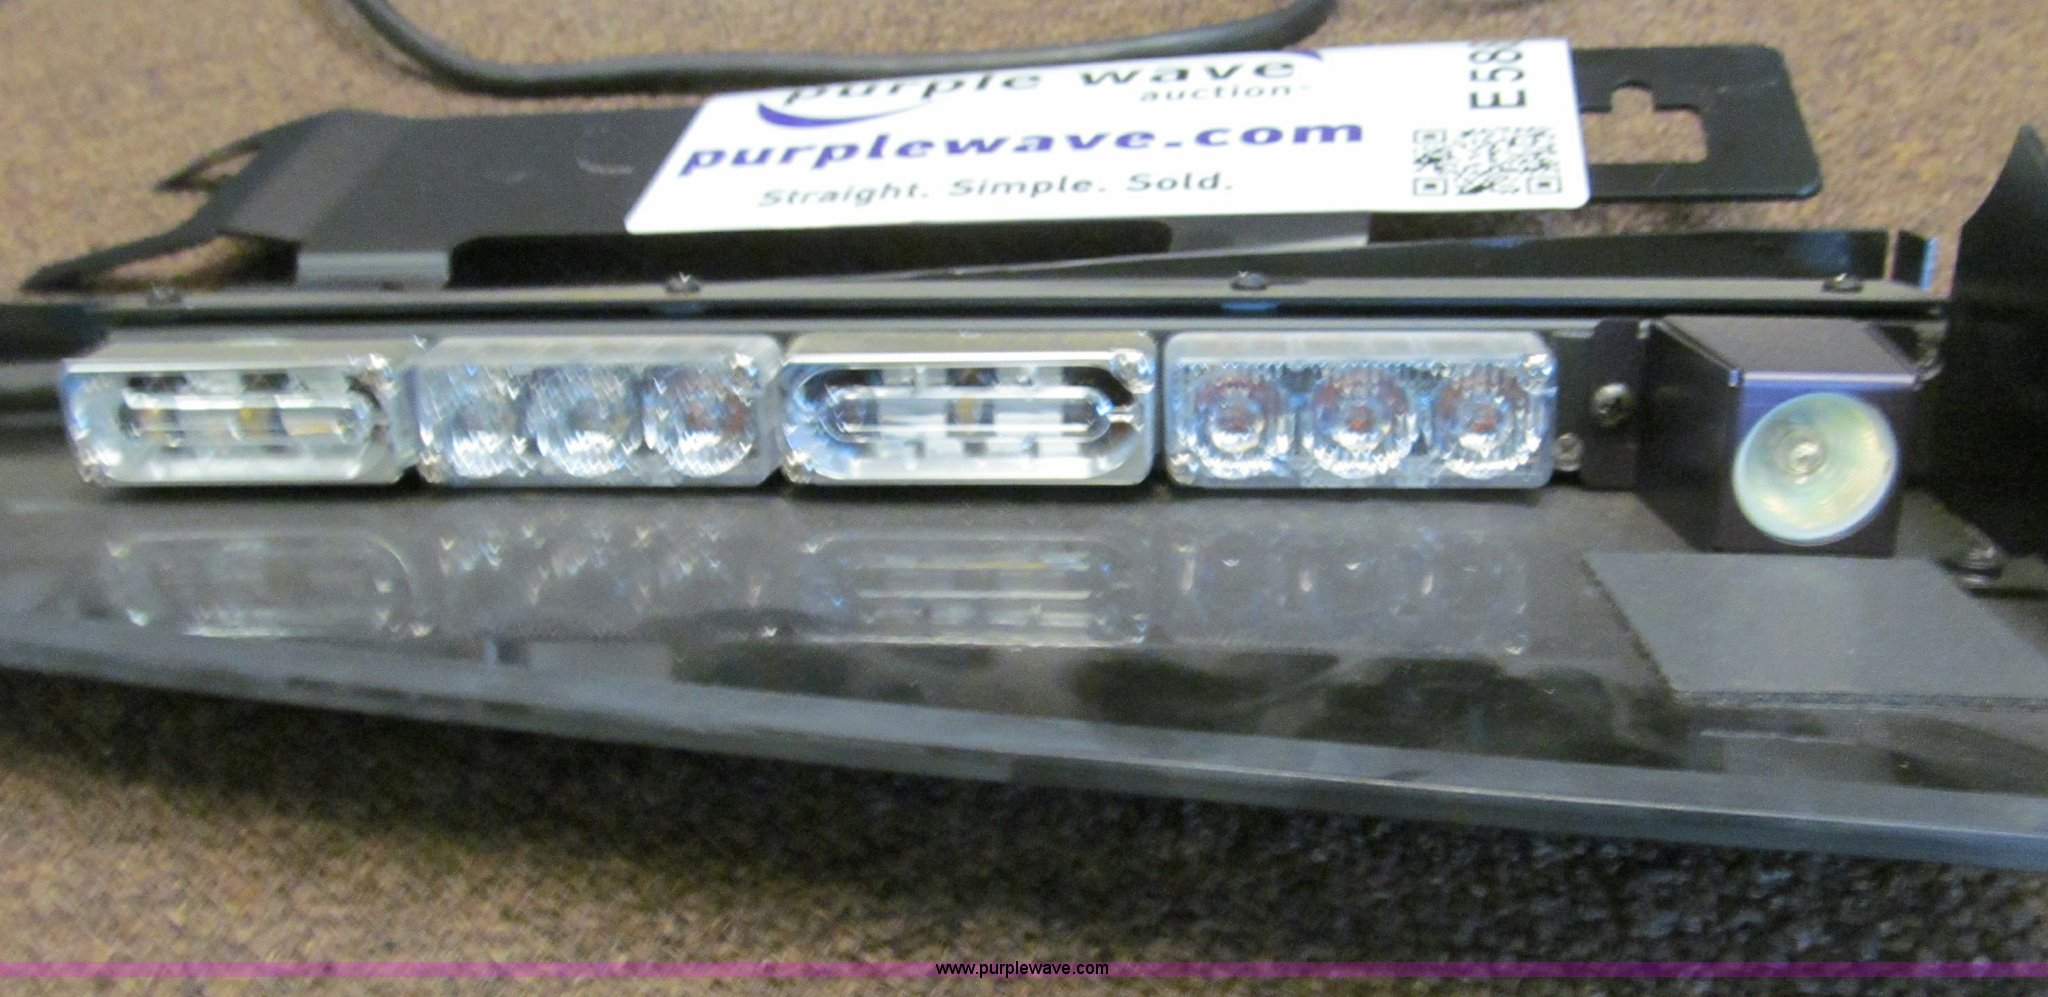 Wiring Whelen Inner Edge Diagram Will Be A Thing Crown Victoria Police Lights Item Rear Used Light Bar